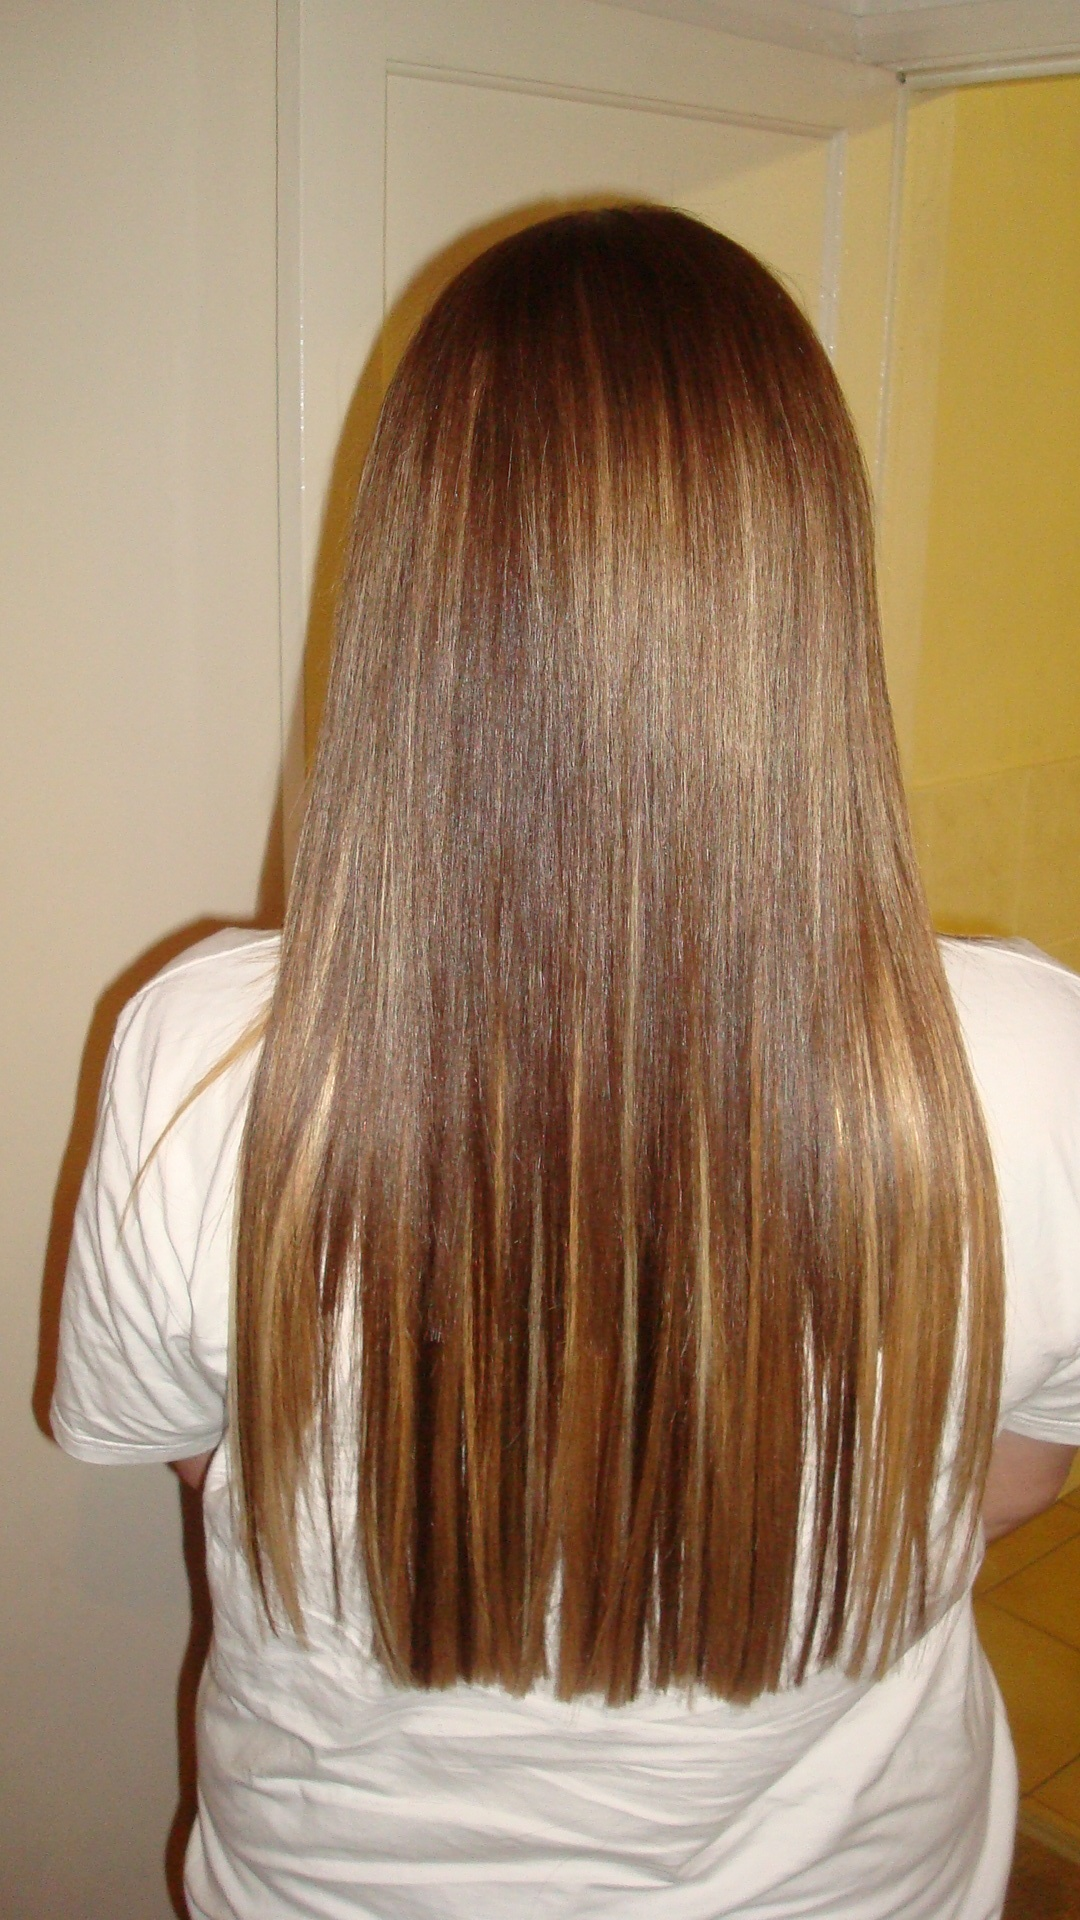 ... brown and blonde shades to match the clients dyed / highlighted hair